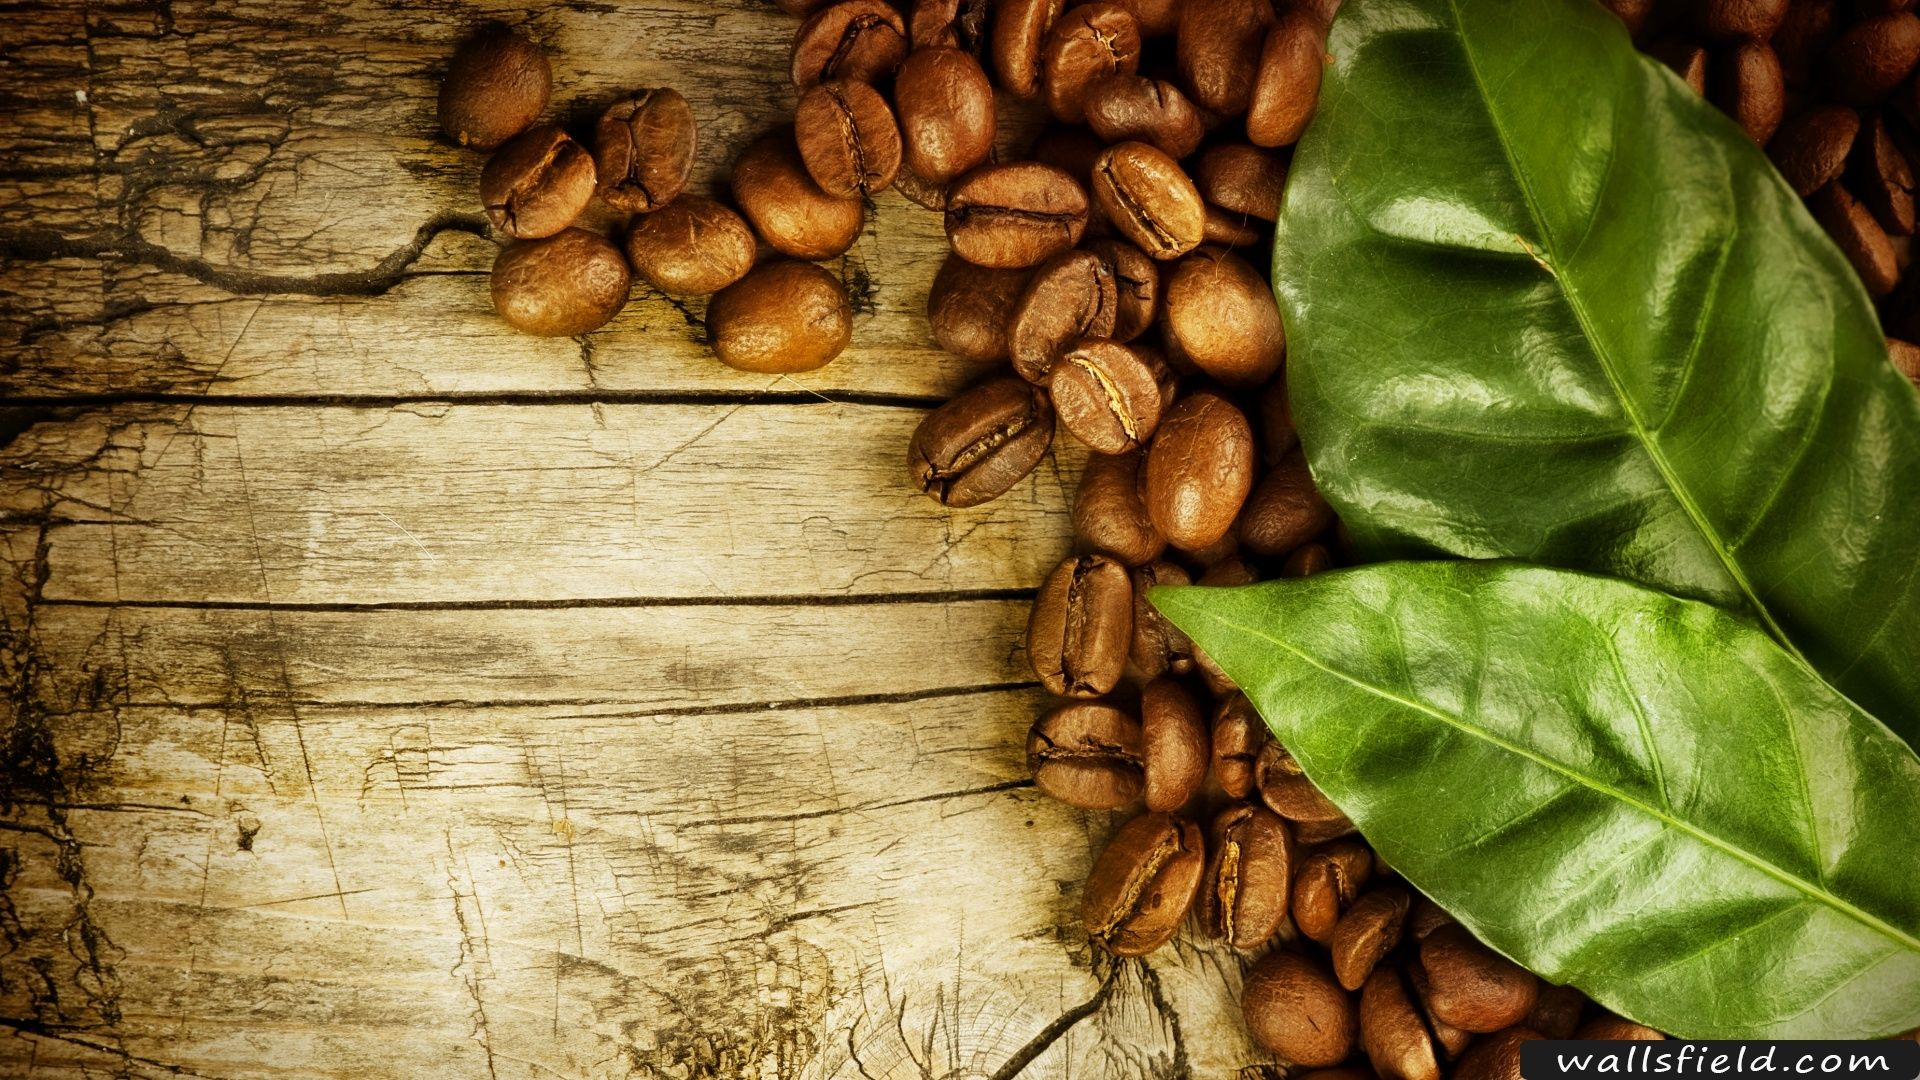 Coffee Beans Desktop Background you can view, download and comment on coffee beans and leaves free